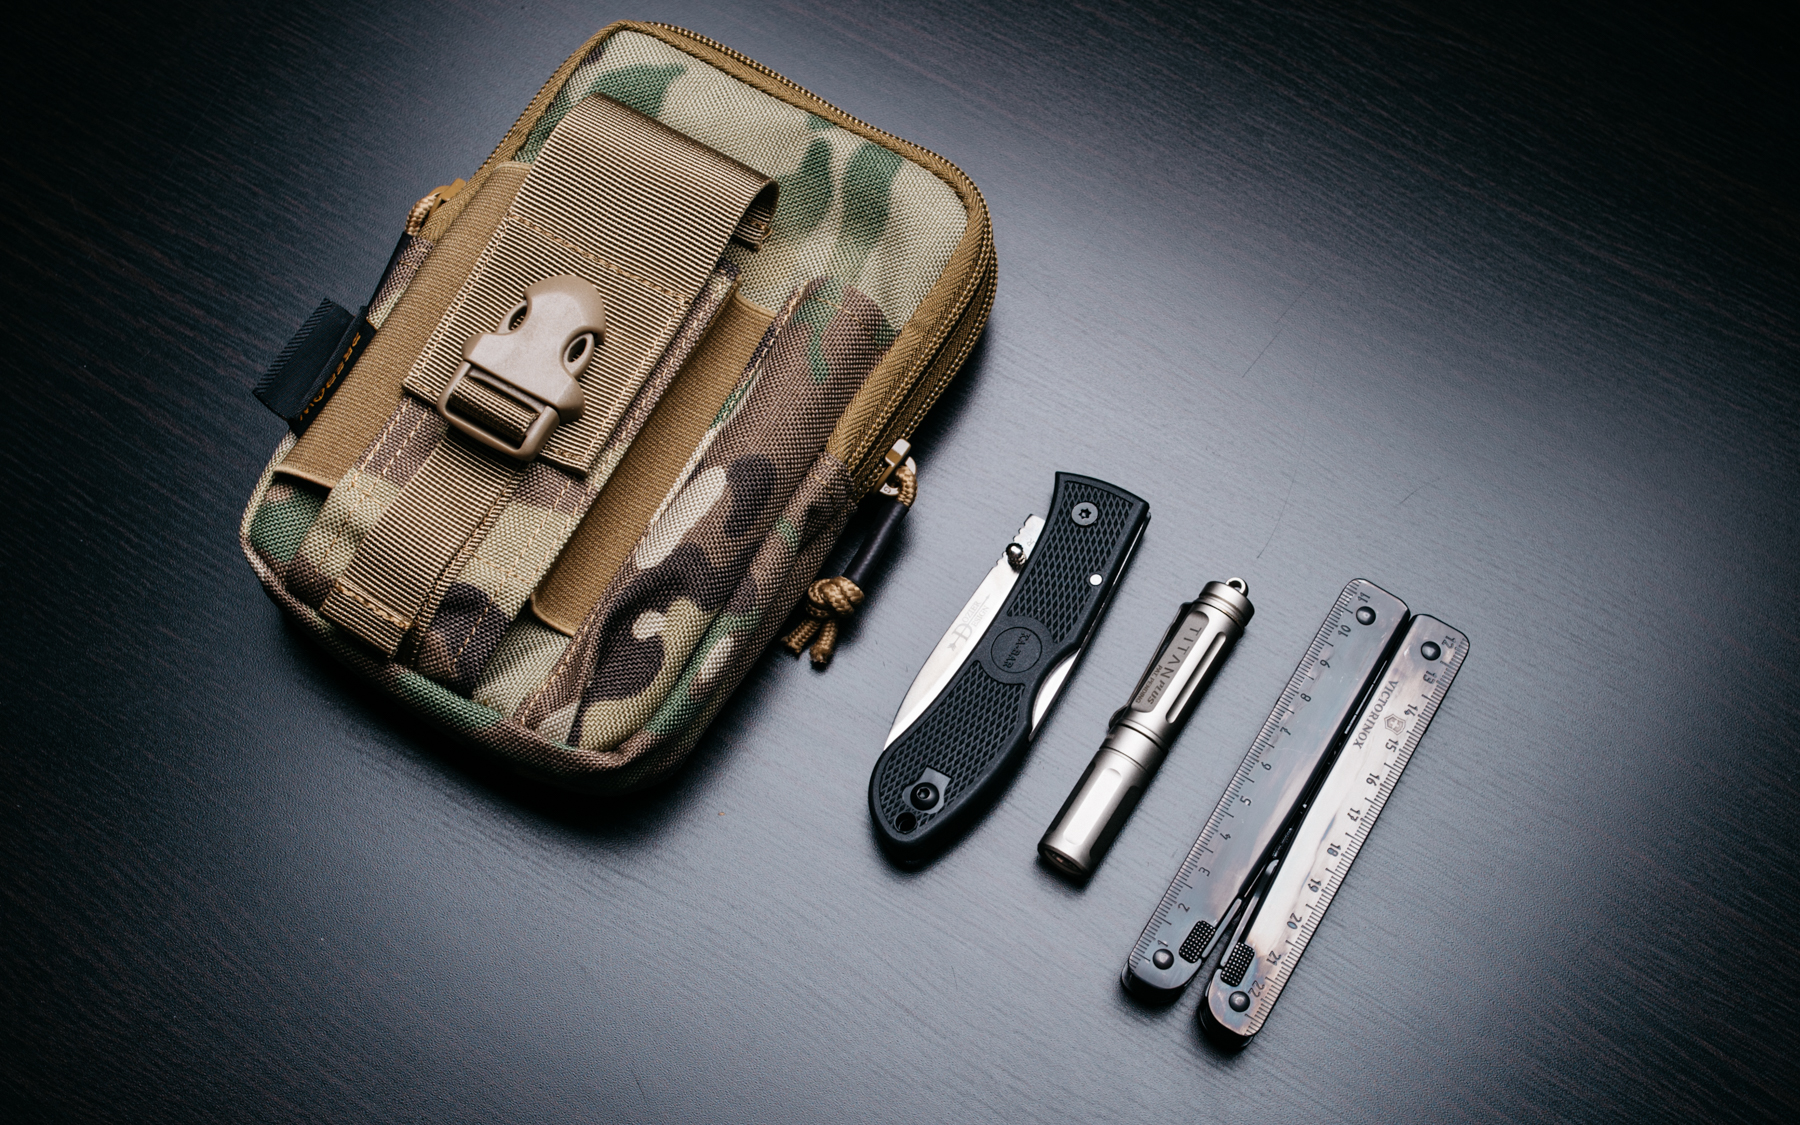 Prizes to be won everyday carry